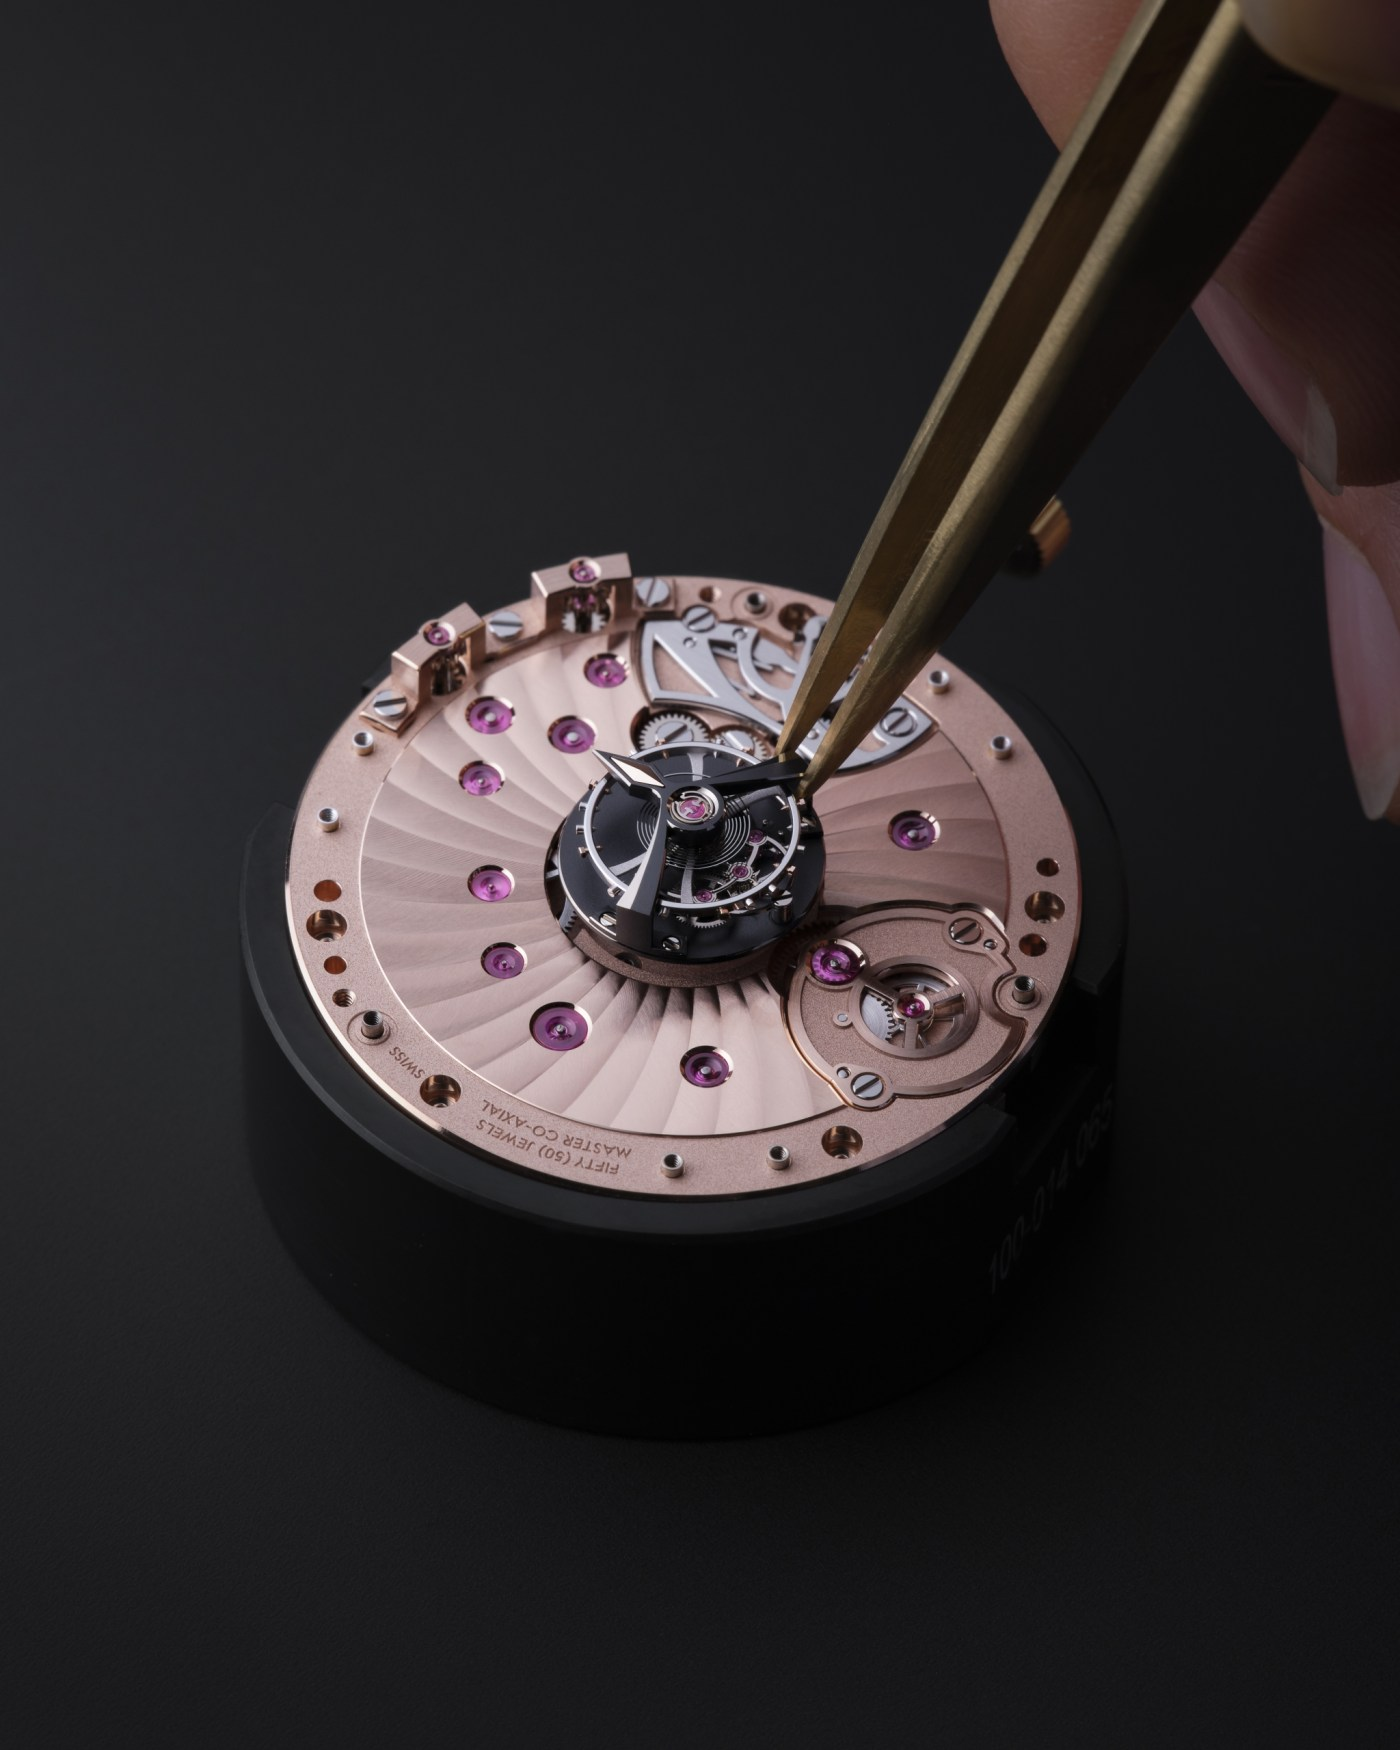 Omega De Ville Tourbillon Master Chronometer watchmaking assembly